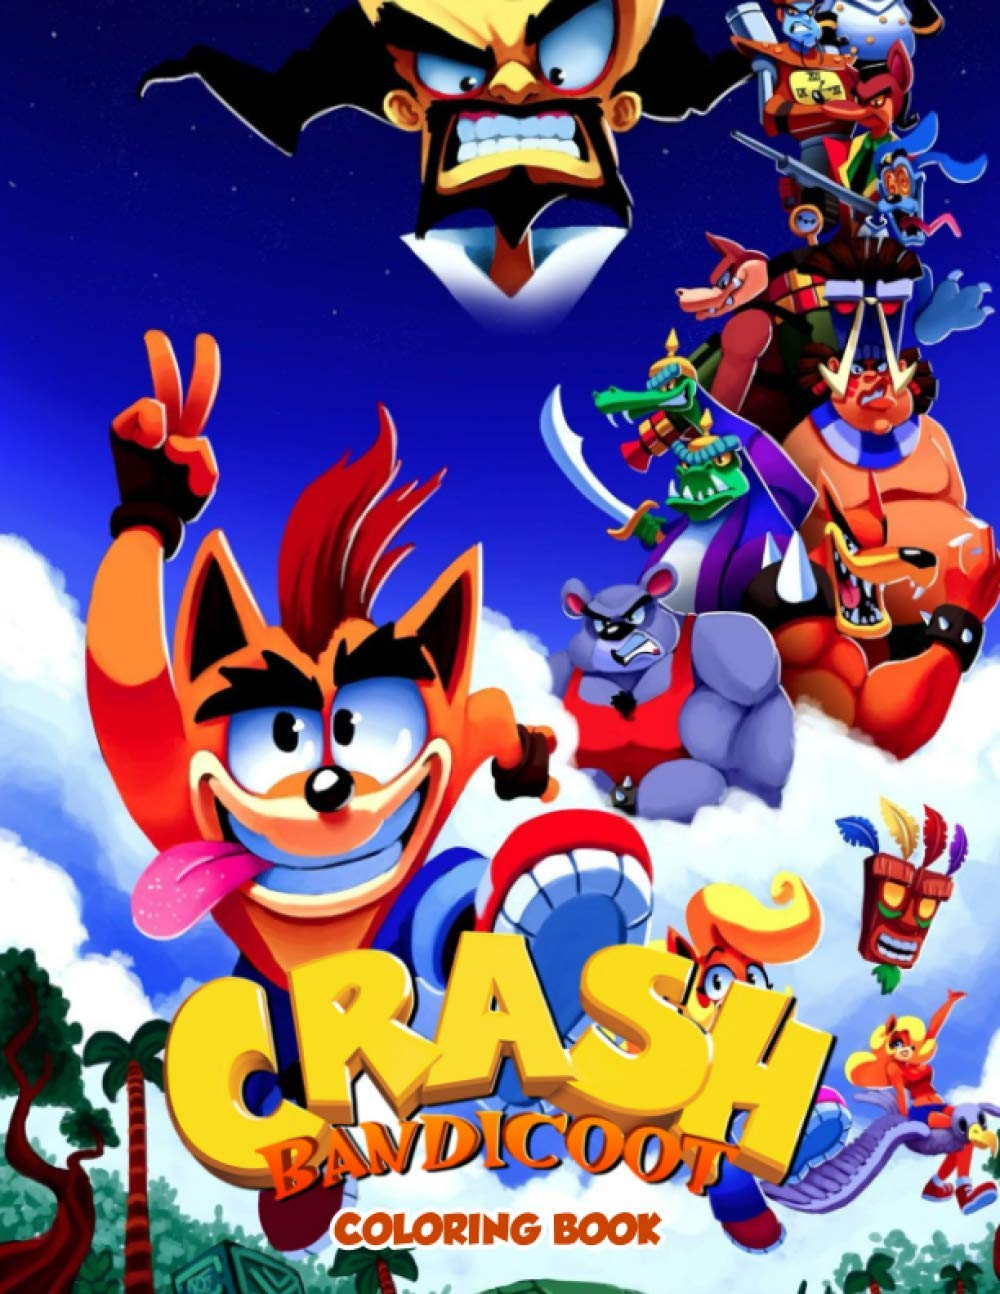 Crash Bandicoot Coloring Book Stunning Coloring Books For Adults And Kids Relaxing Activity Pages Melonie Olson 9798694295284 Amazon Com Books